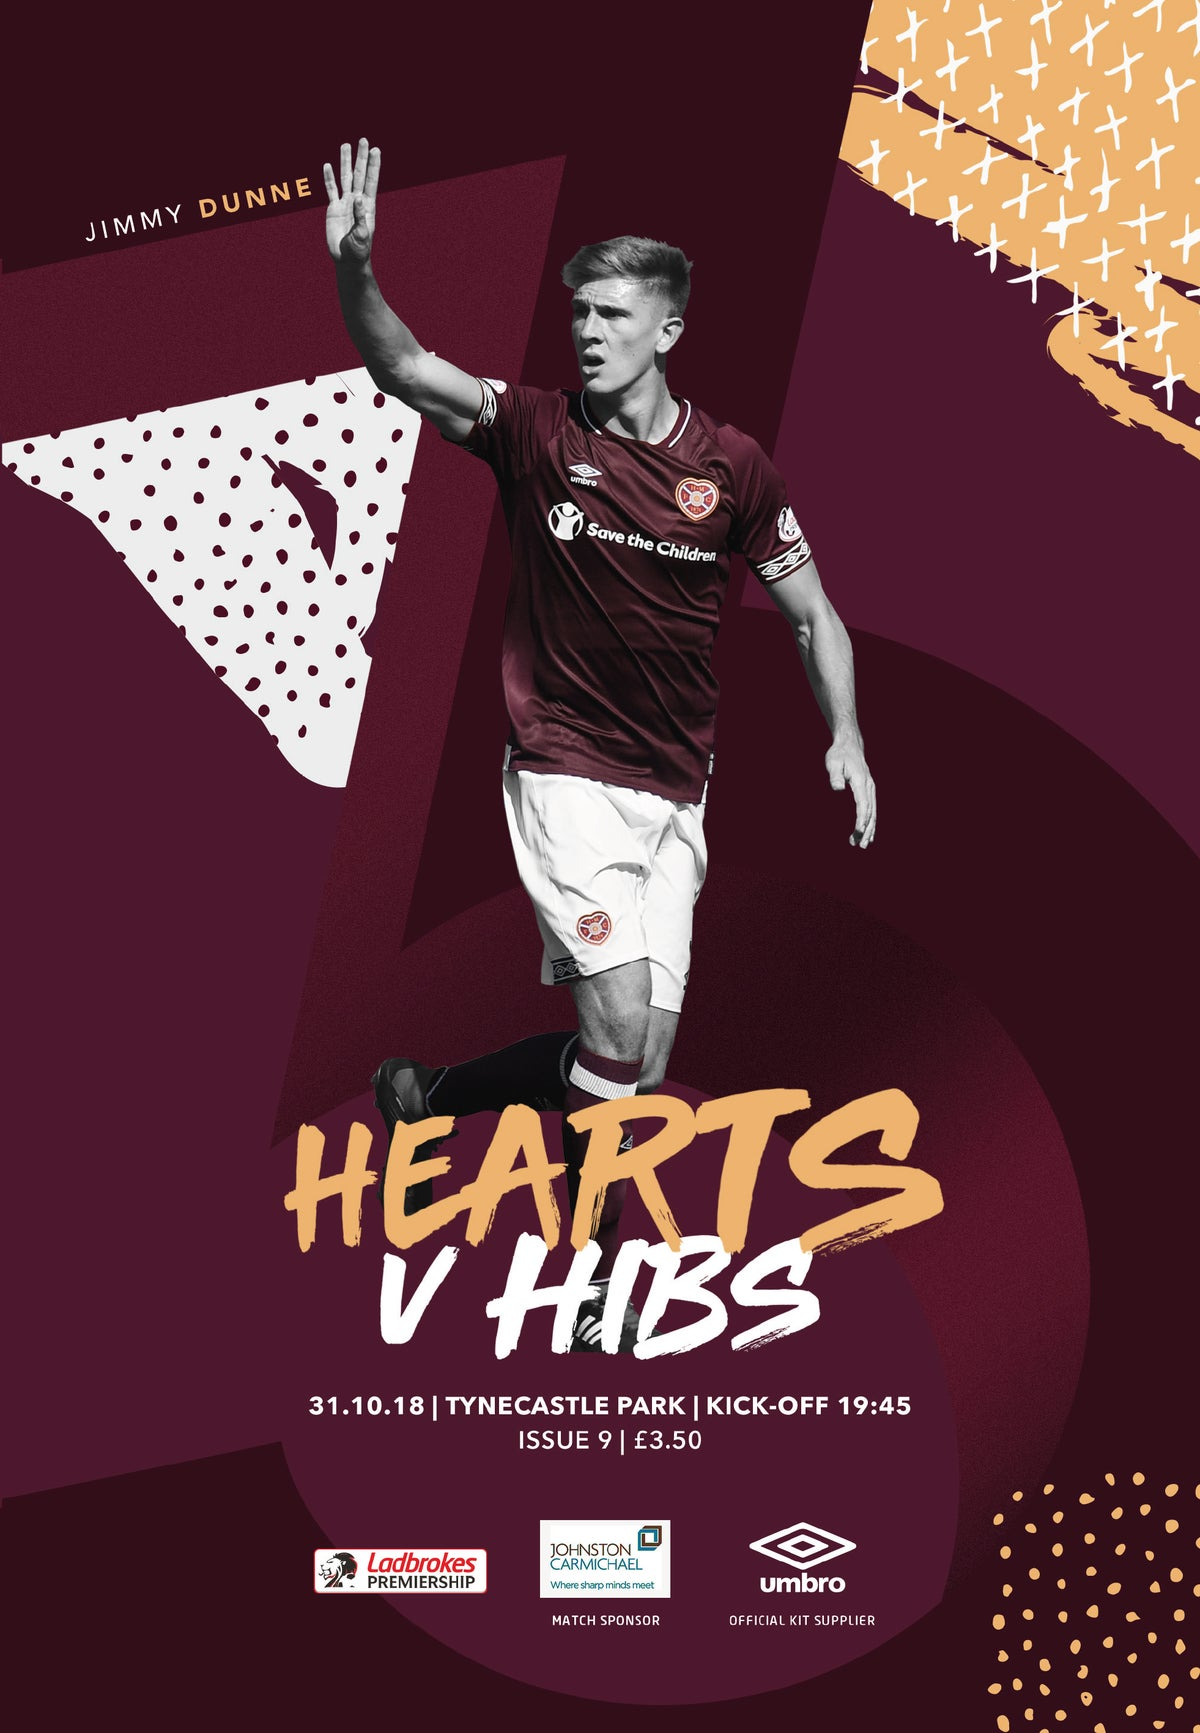 Image of Hearts v Hibs, 31st October 2018